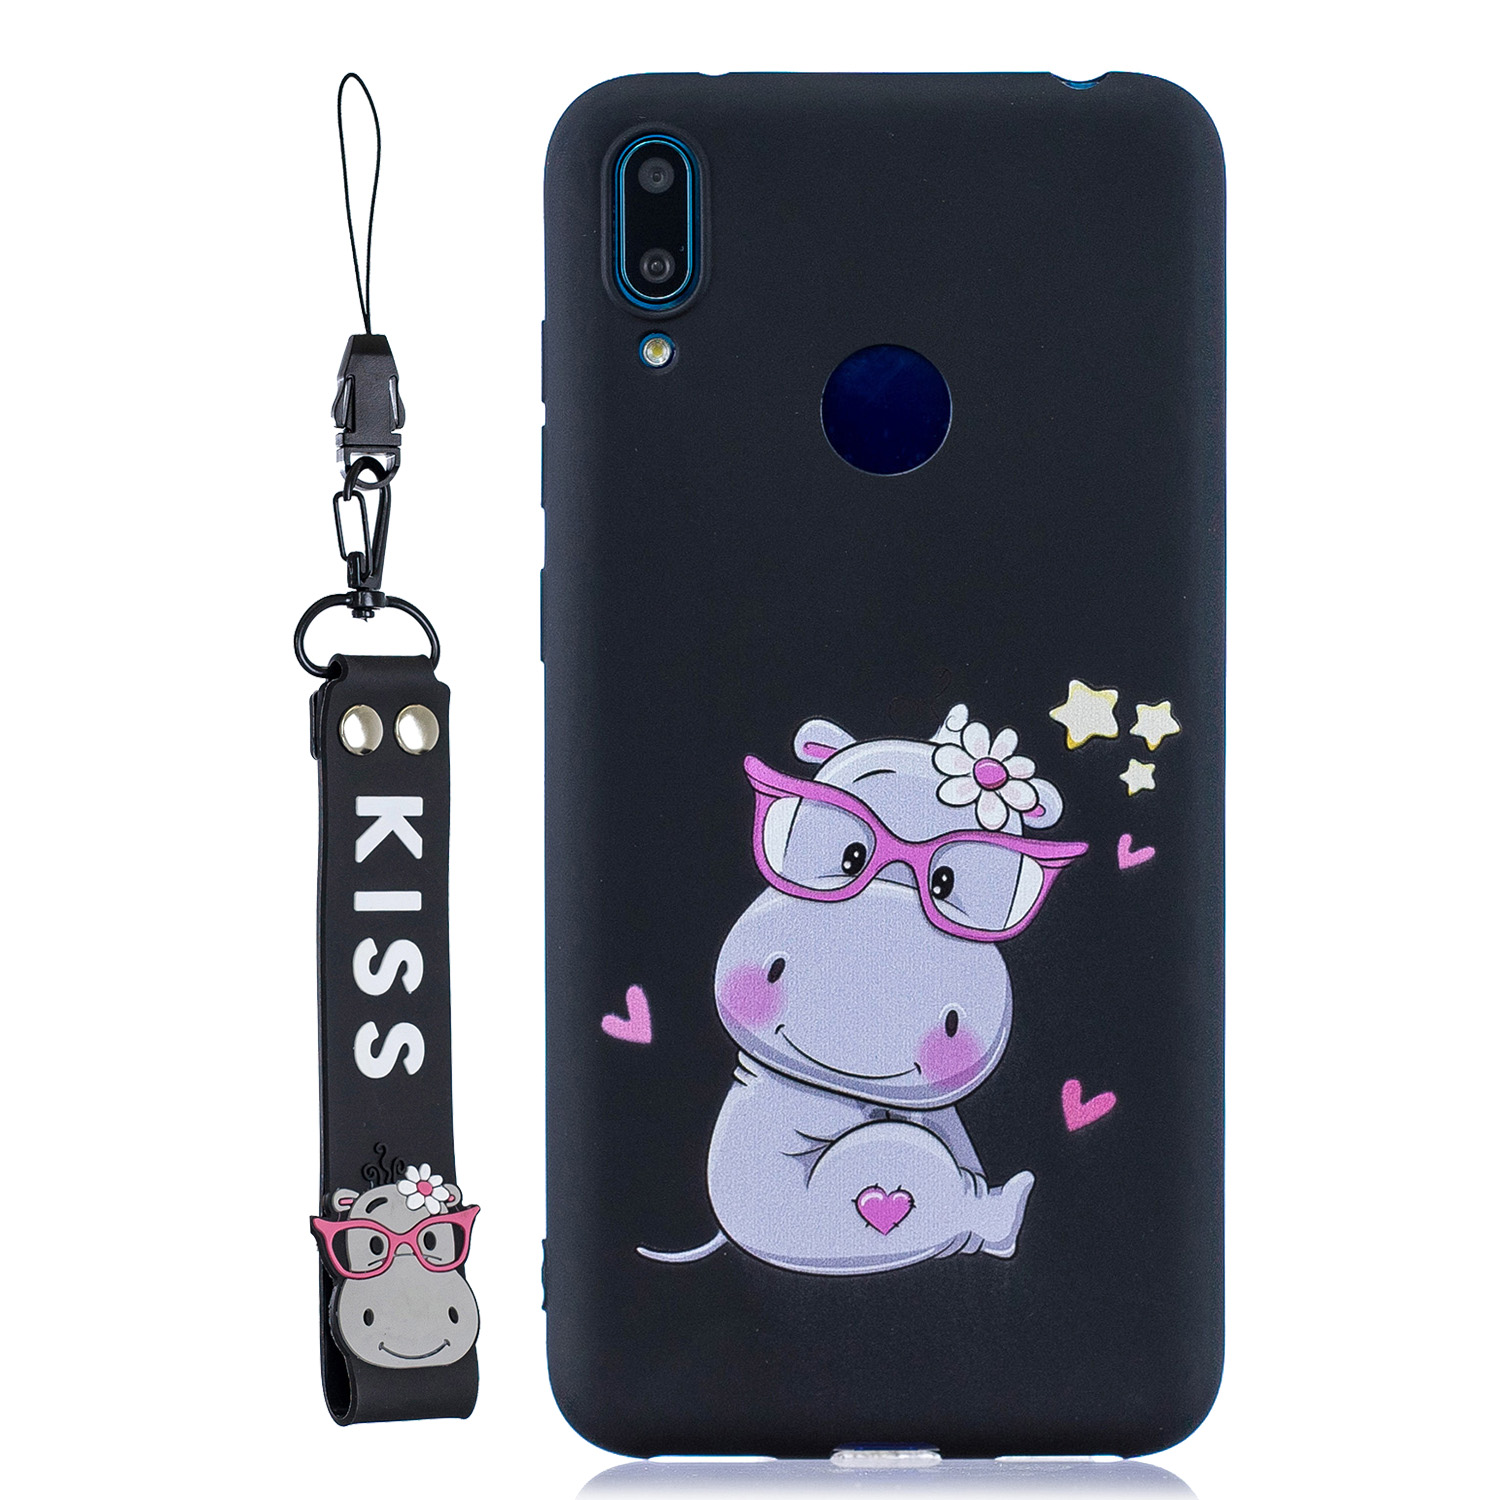 For HUAWEI Y7 2019 Cute Coloured Painted TPU Anti-scratch Non-slip Protective Cover Back Case with Lanyard black